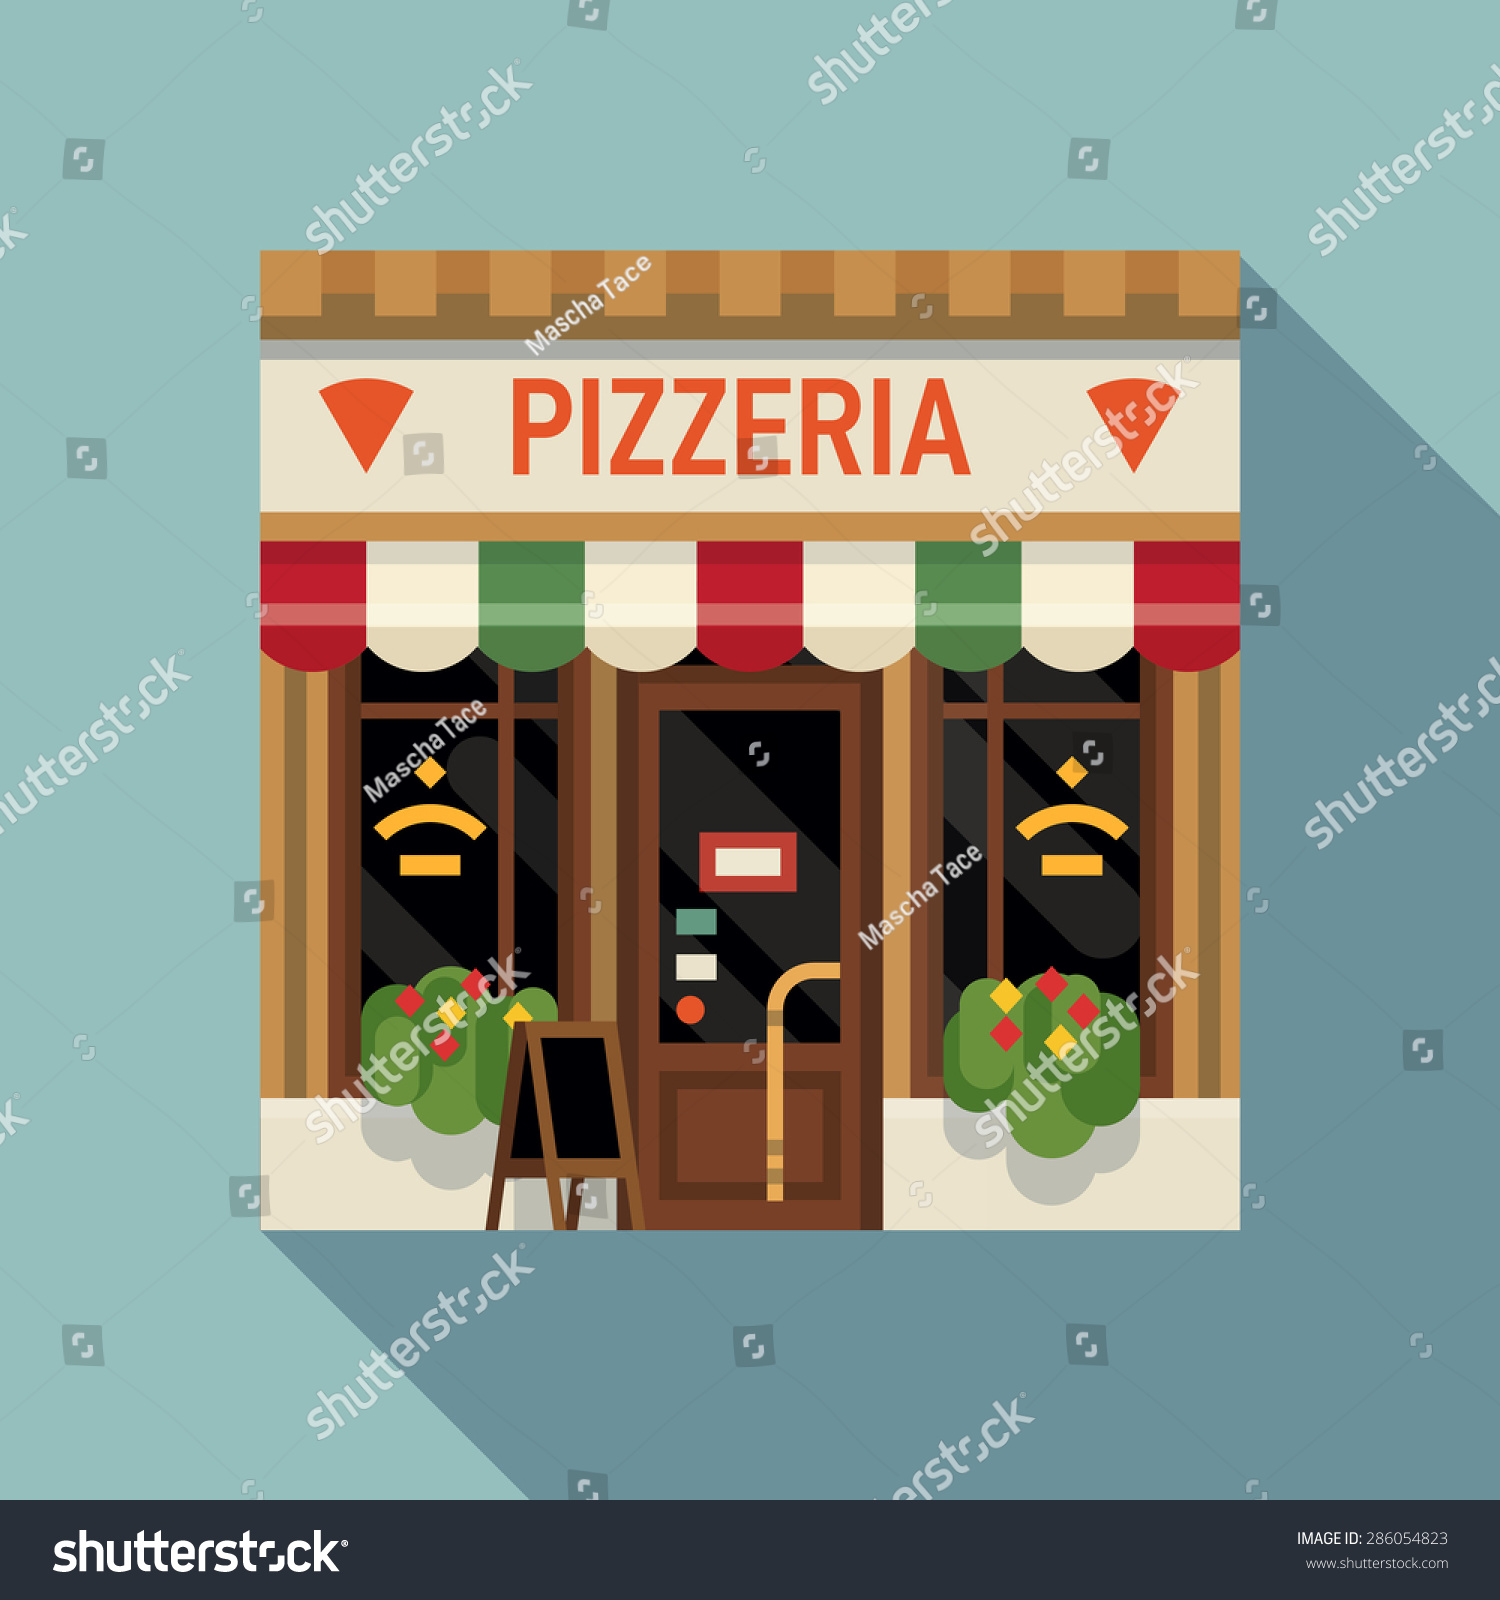 Vector De Stock Libre De Regalias Sobre Cool Vector Detailed Flat Design Pizzeria286054823